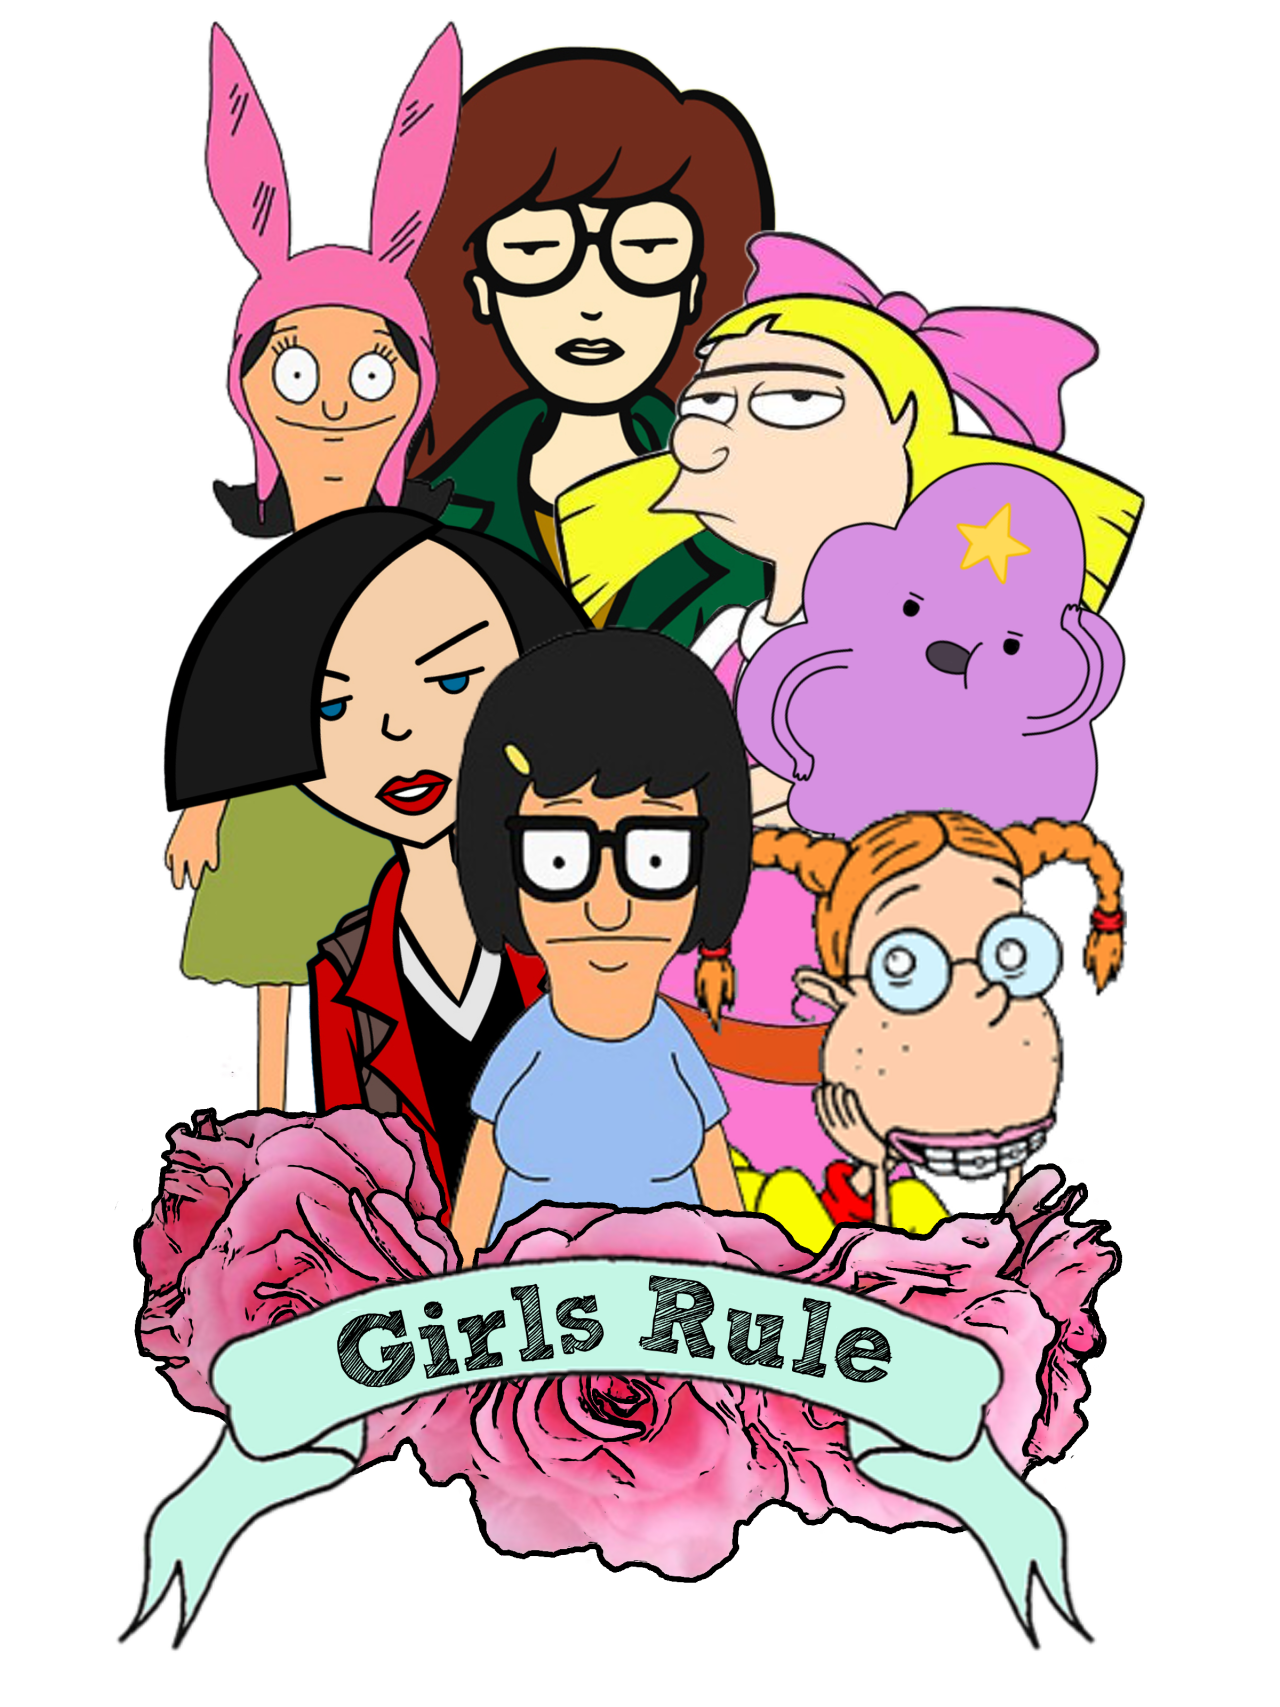 Rules clipart group rule. All women deserve to